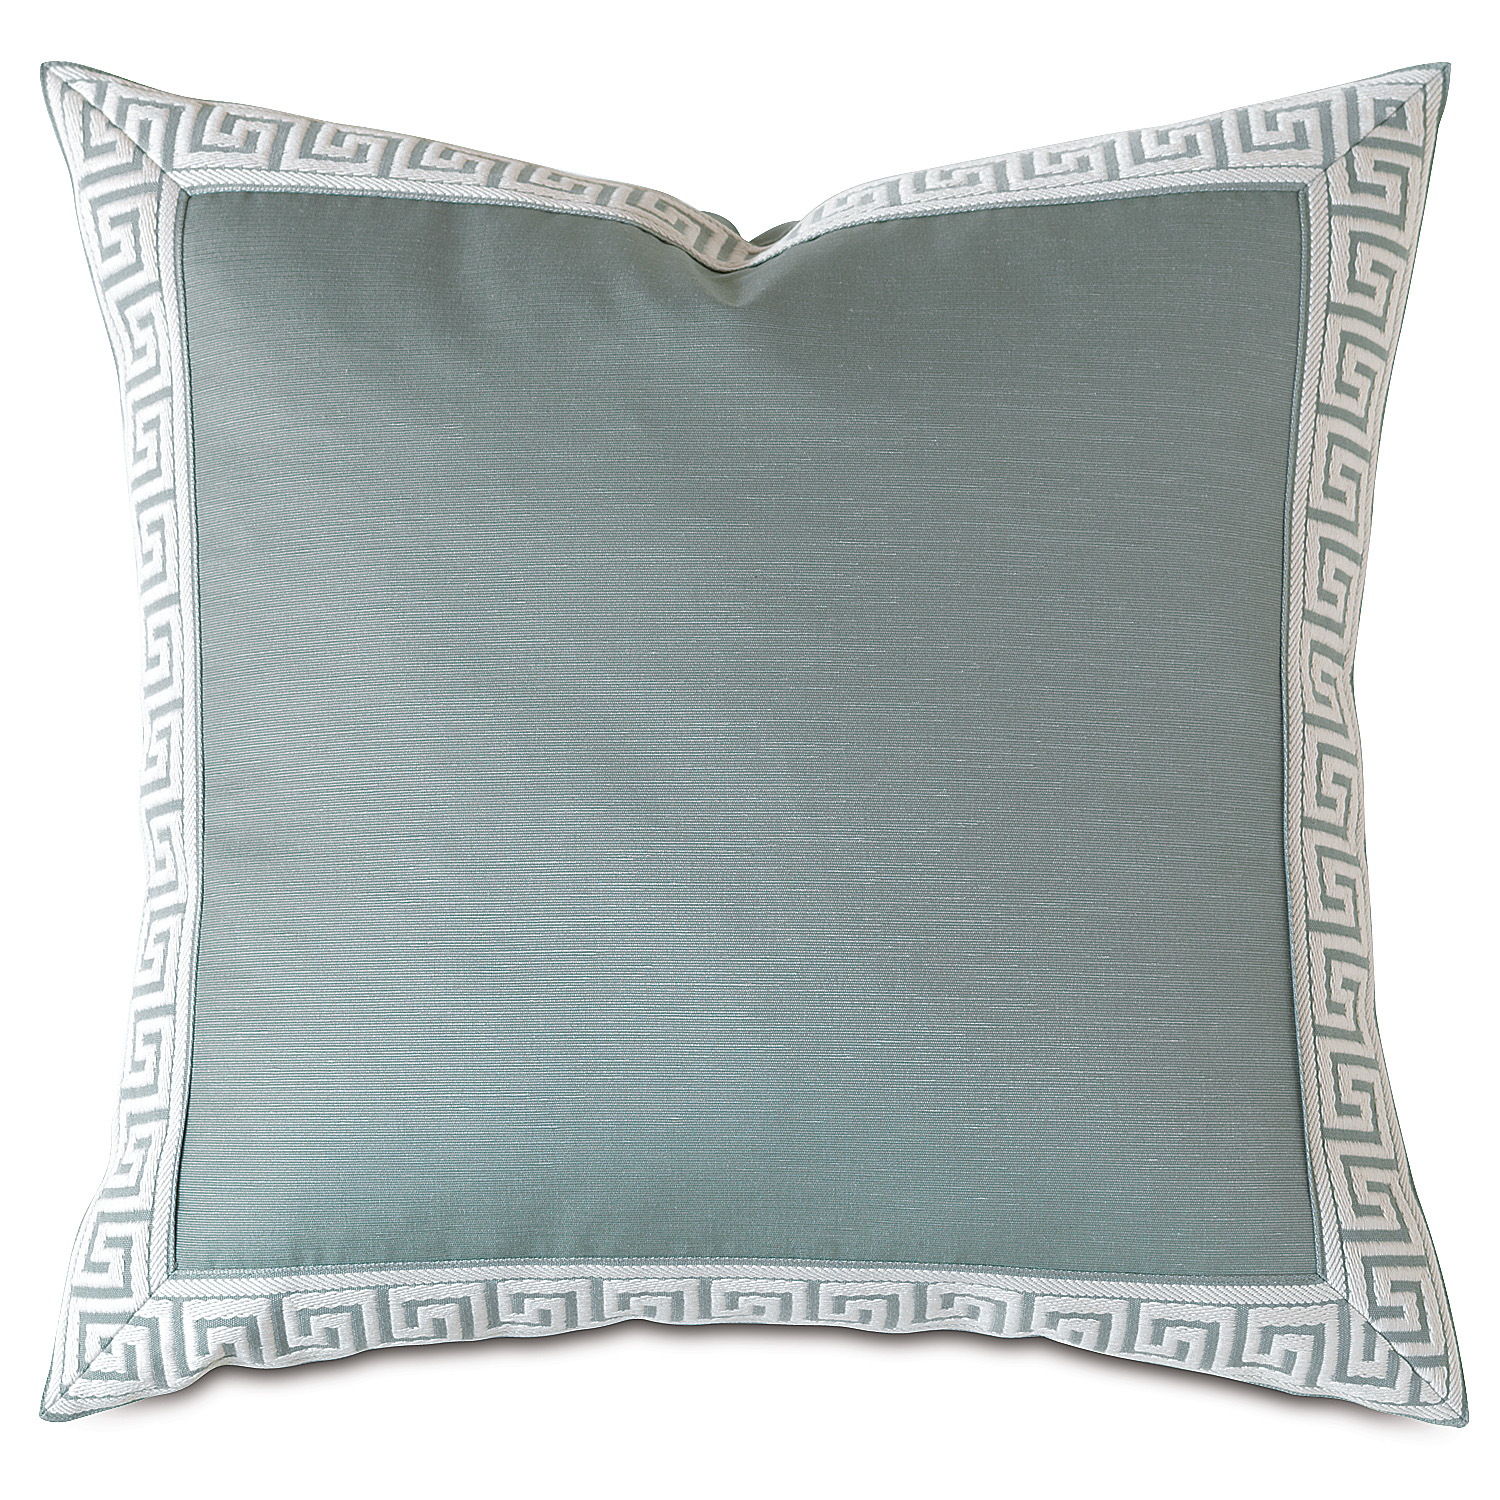 Mack Ice Greek Key Border Accent Pillow